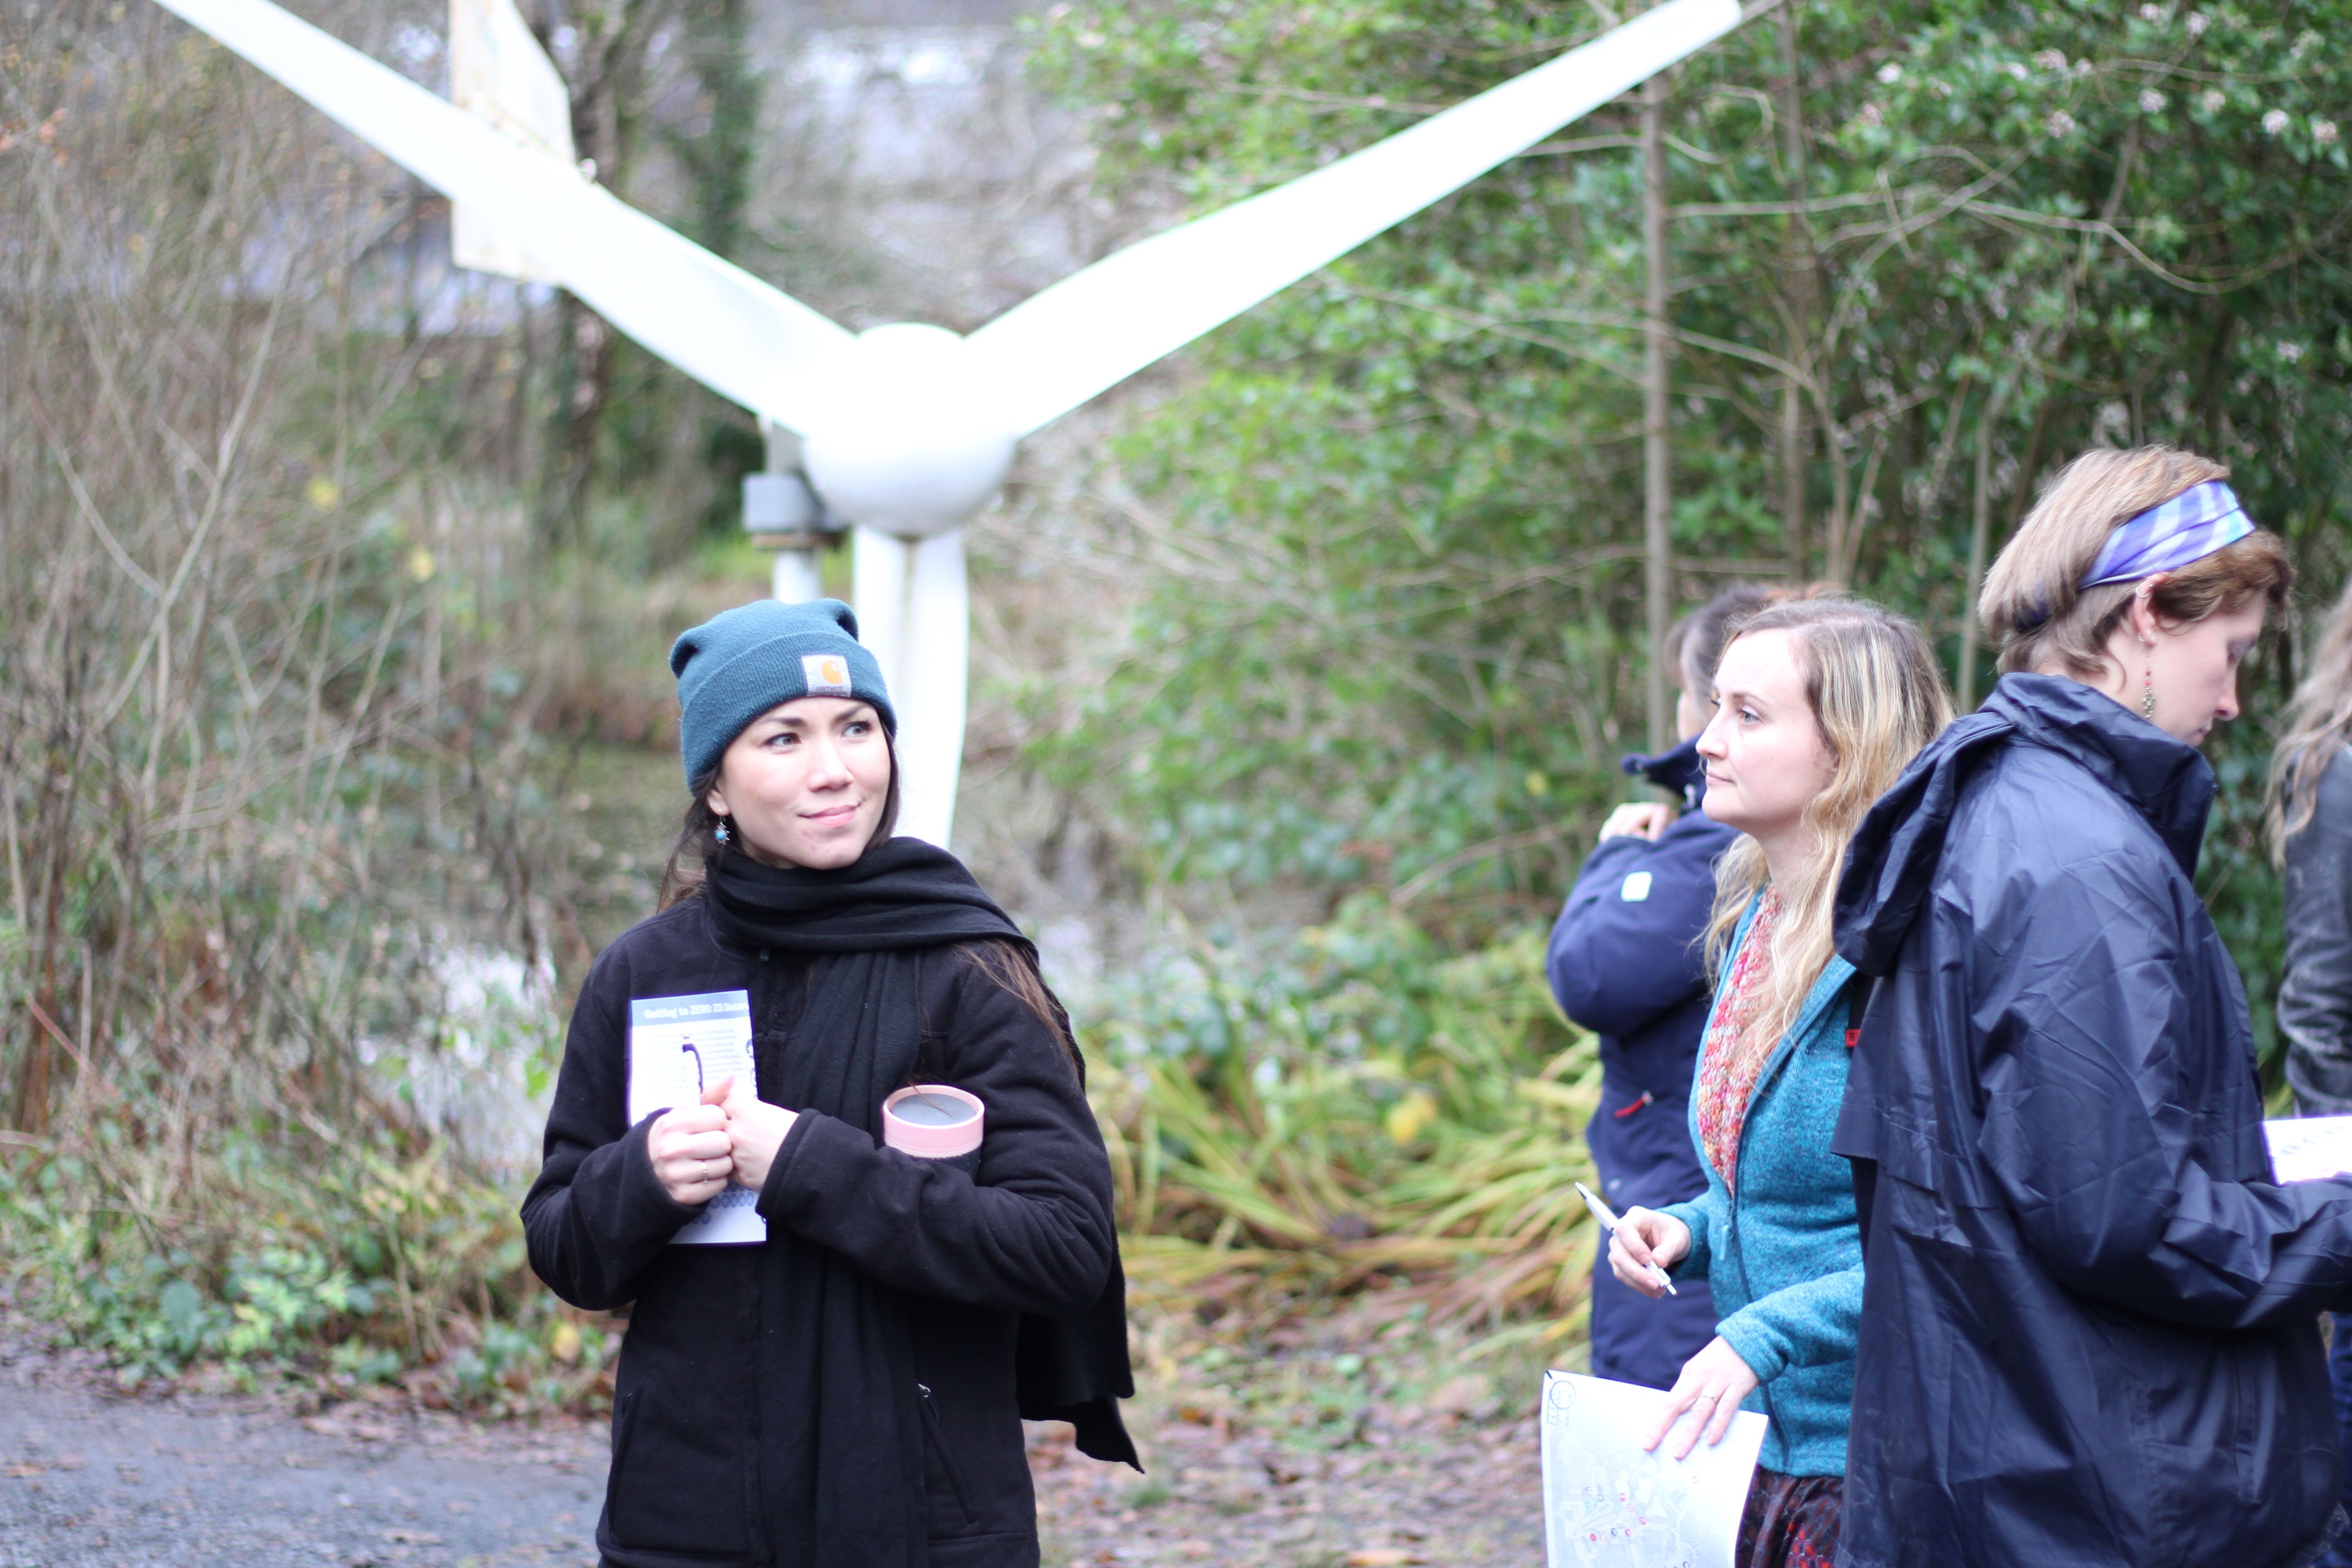 group of four people near a small wind turbine, set in the woods at the Centre for Alternative Technology in Wales